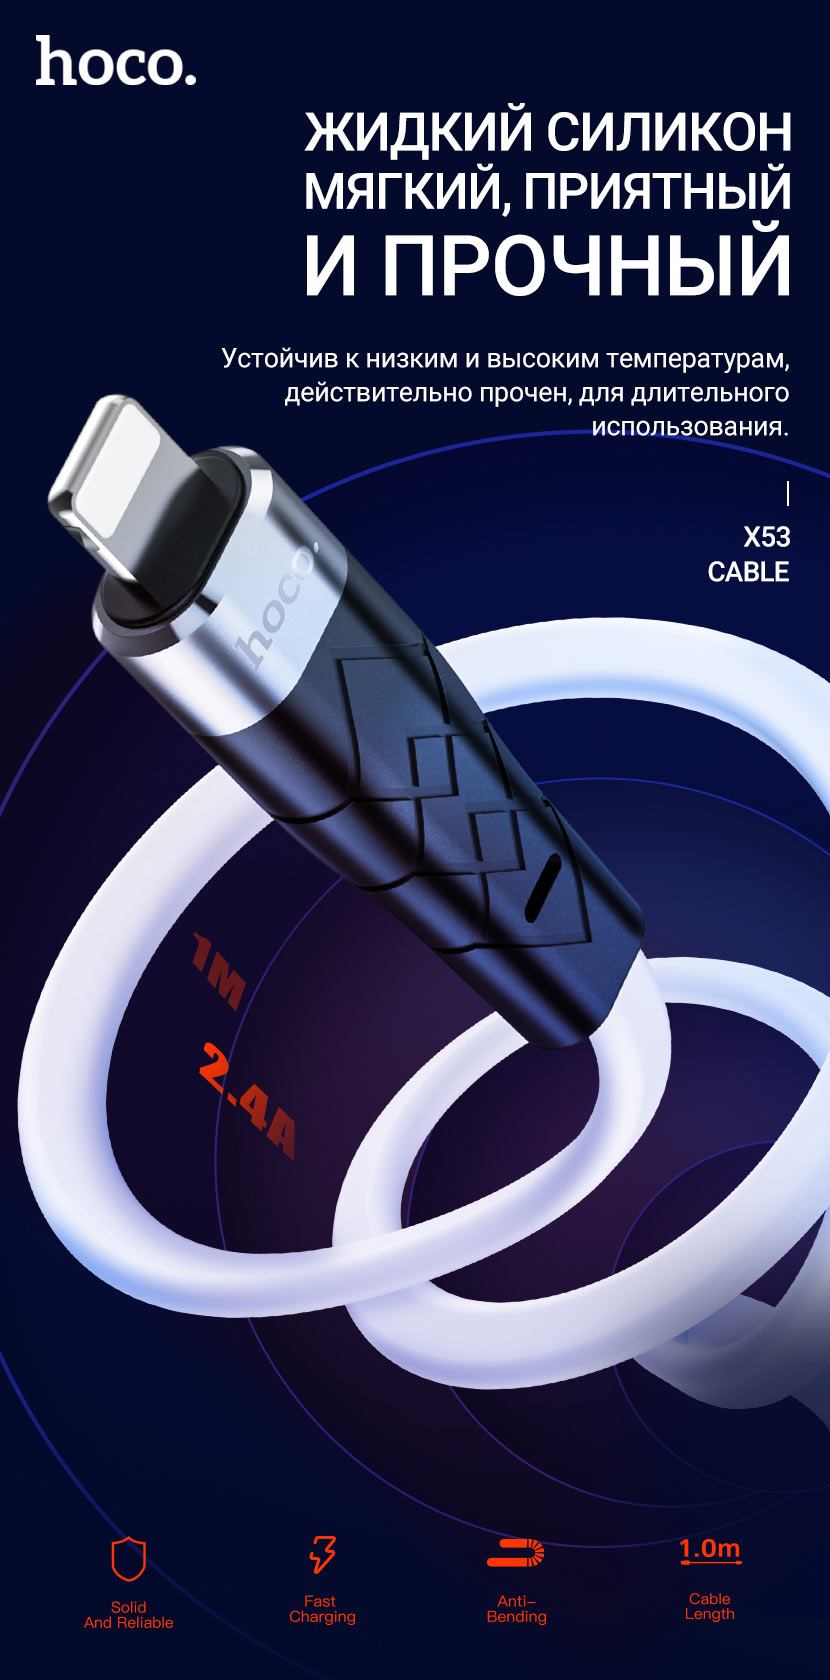 hoco news x53 angel silicone charging data cable ru